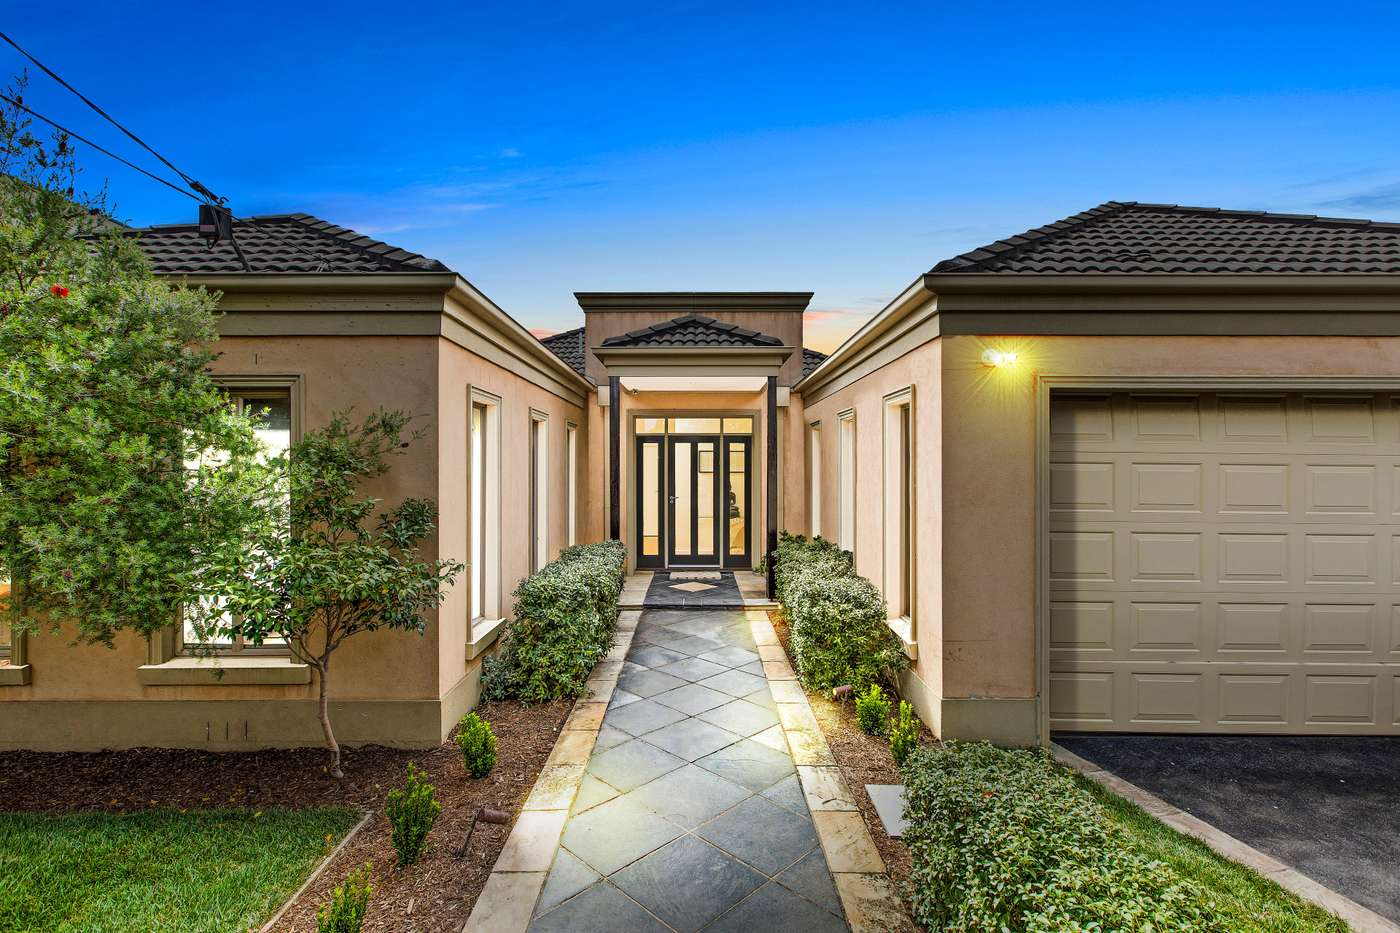 Main view of Homely house listing, 18 Alexander Street, Bentleigh East, VIC 3165